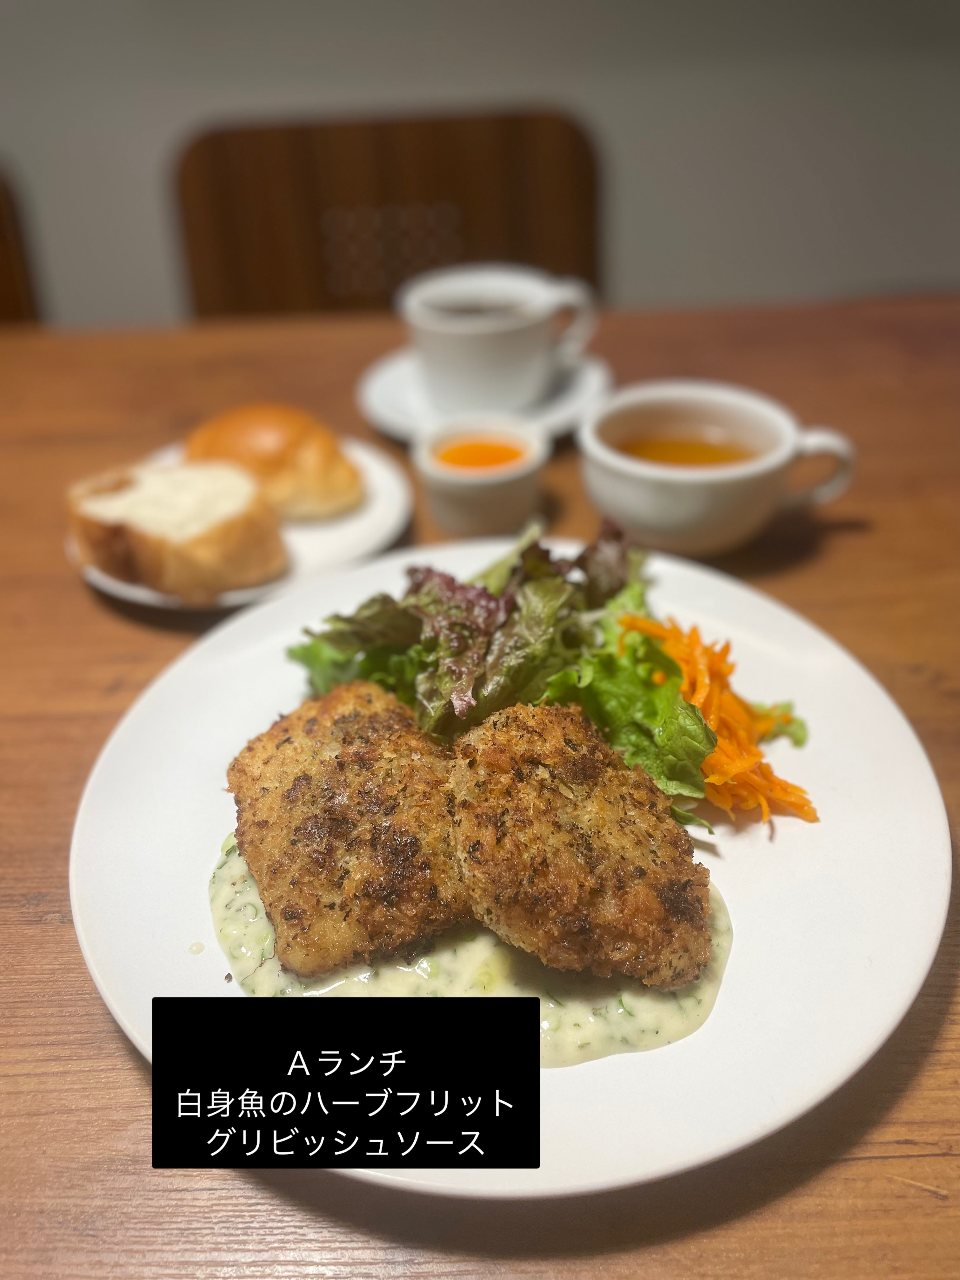 Aランチ 白身魚のハーブフリット